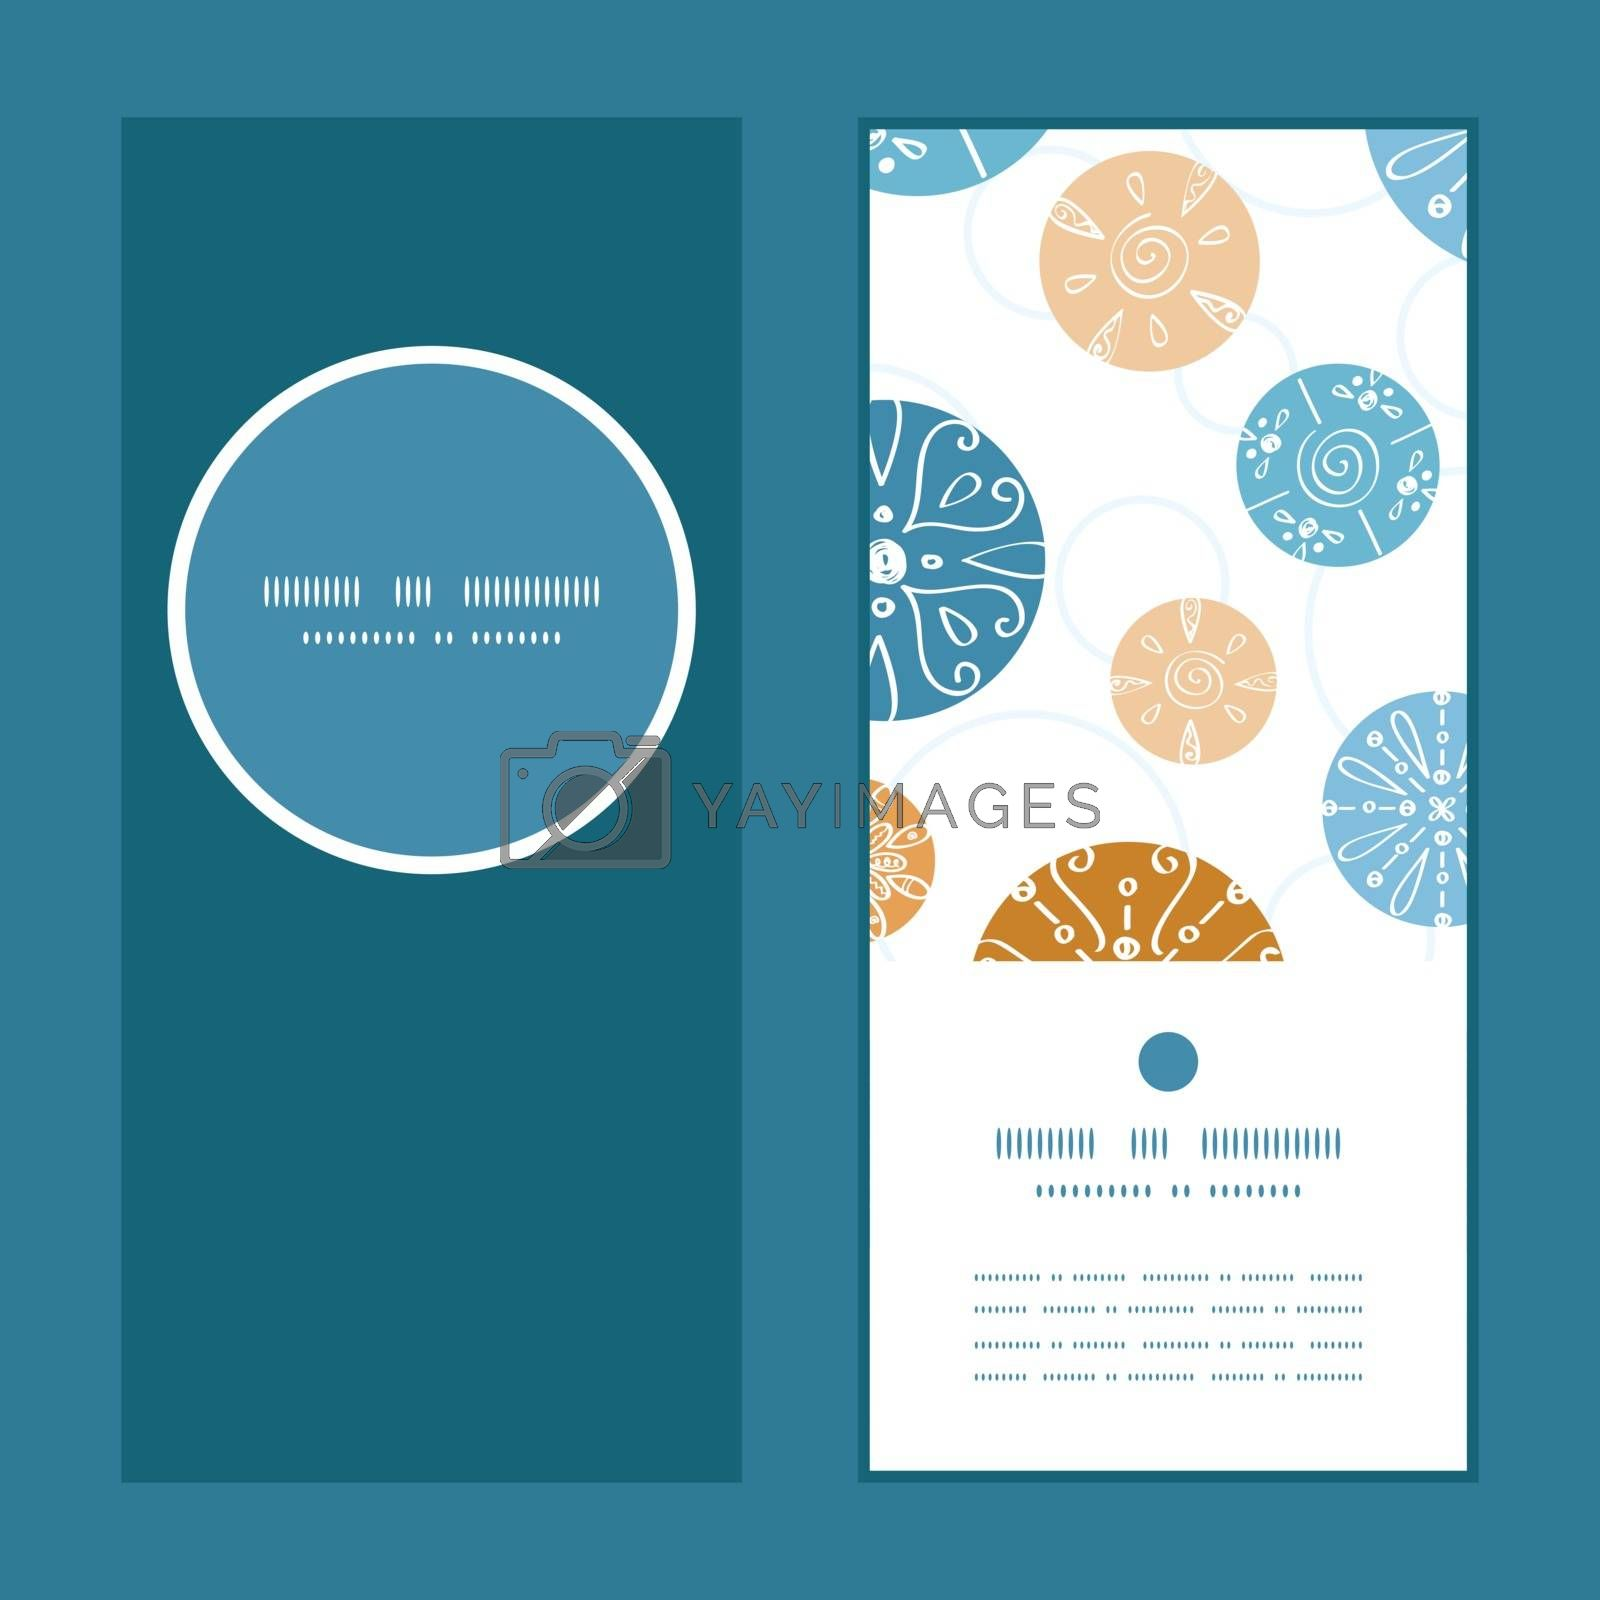 Vector abstract blue brown vintage circles back vertical round frame pattern invitation greeting cards set graphic design